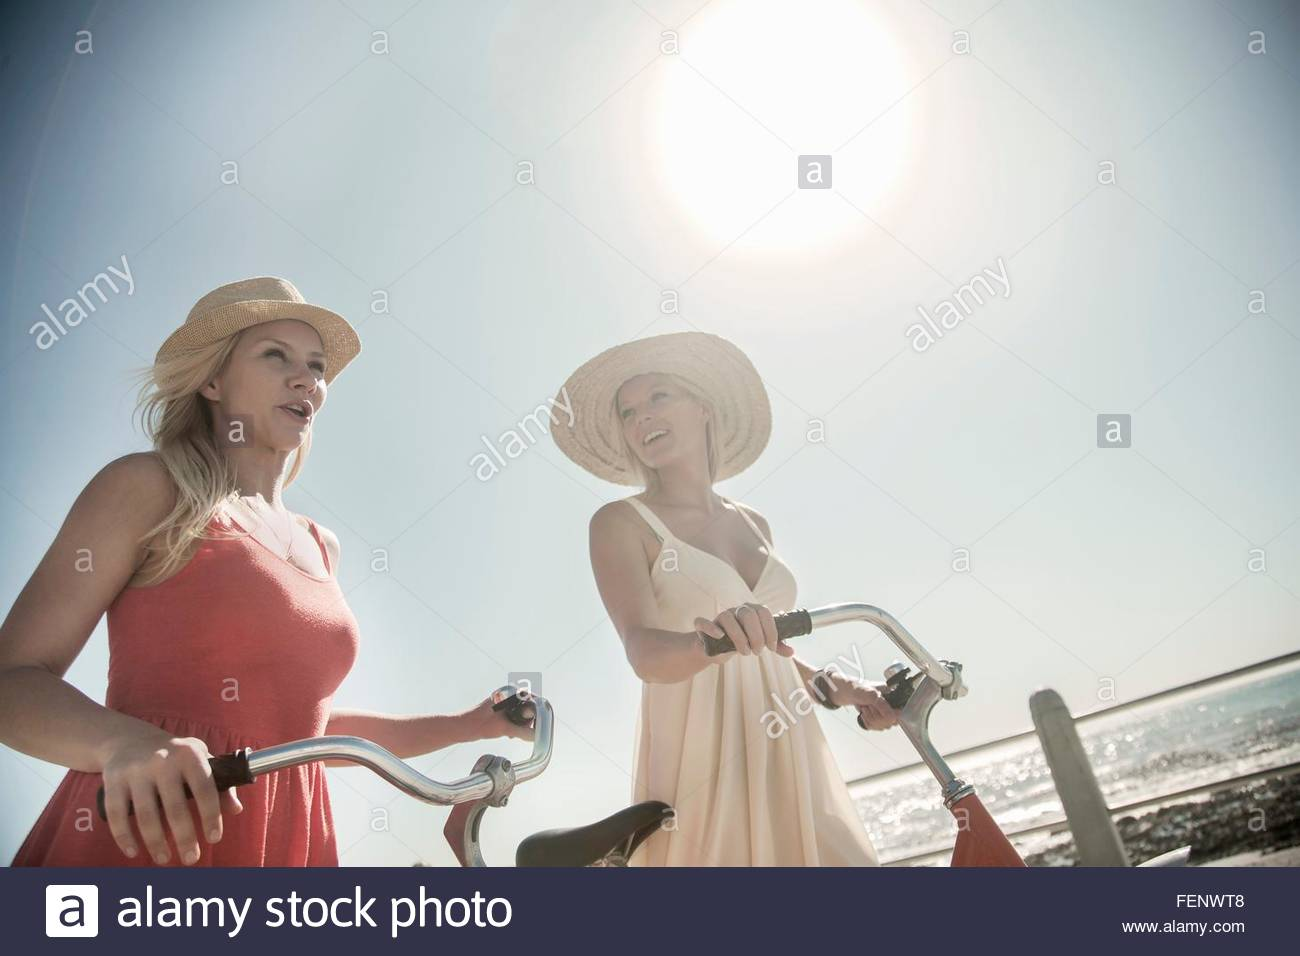 Young women walking with bicycle on seafront - Stock Image